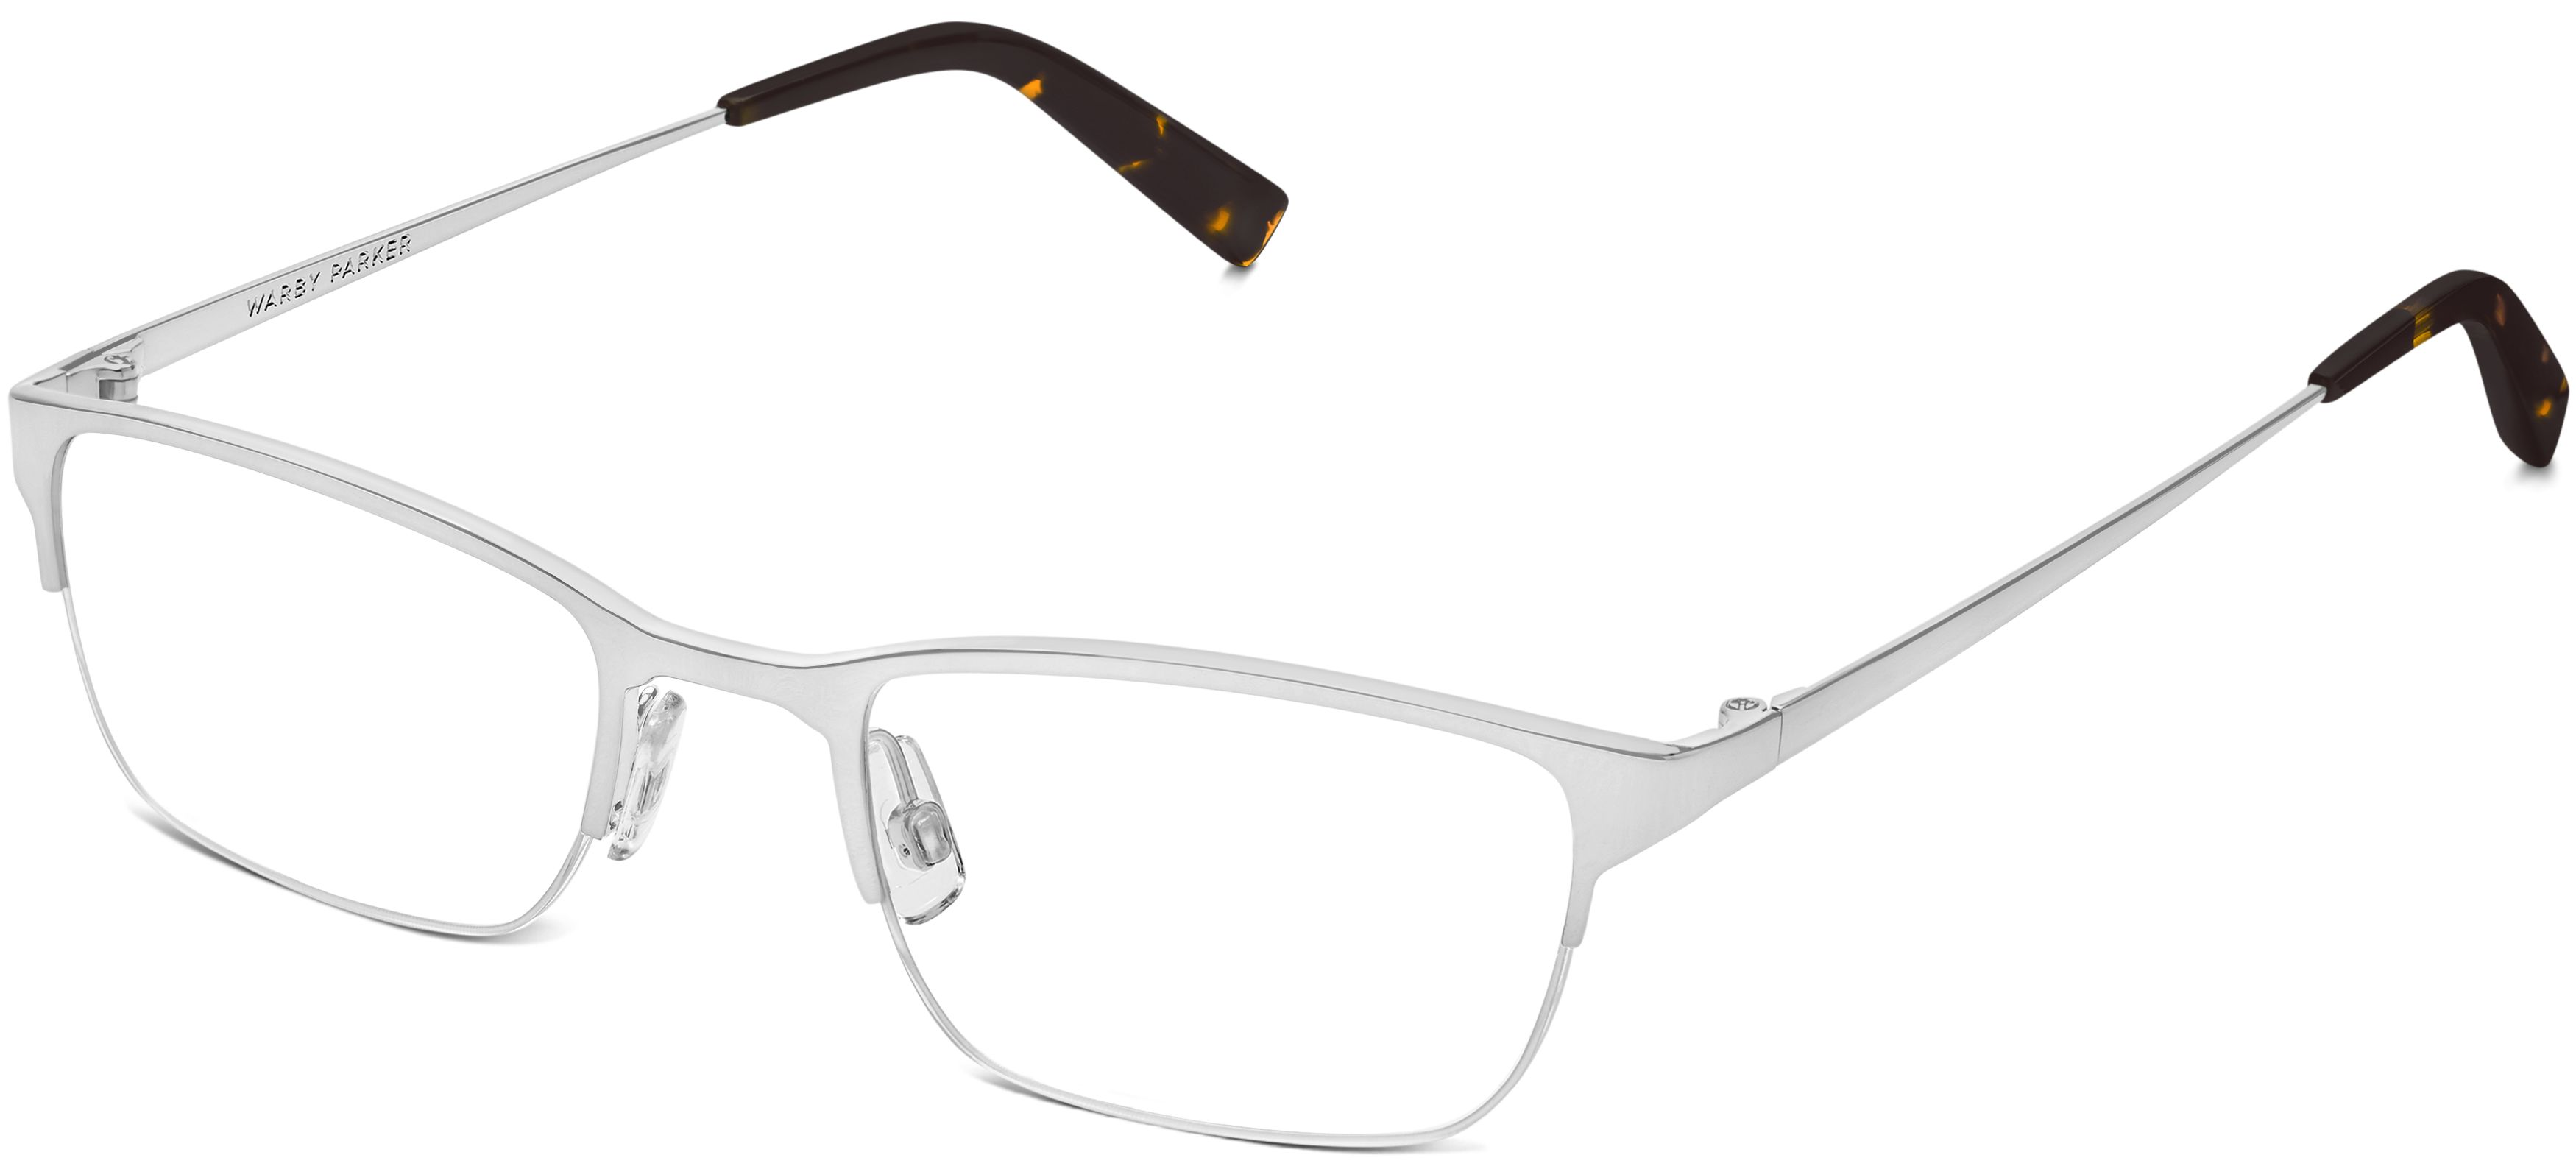 Caldwell Narrow Eyeglasses in Polished Silver for Women | Warby Parker